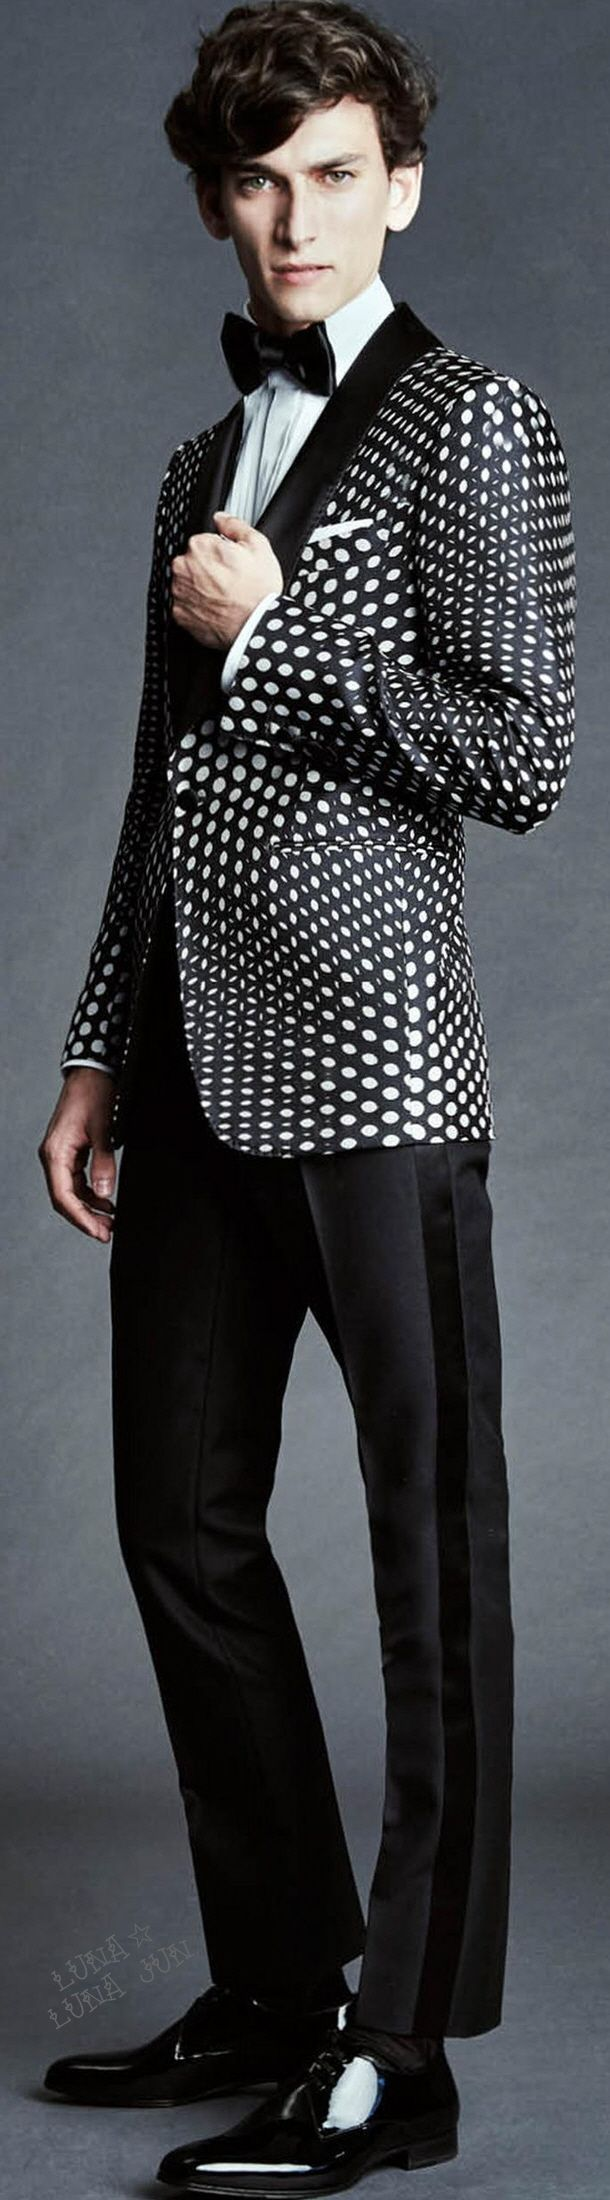 seeing hives // Tom Ford SS 2015  #menswear #simplydapper #stylish